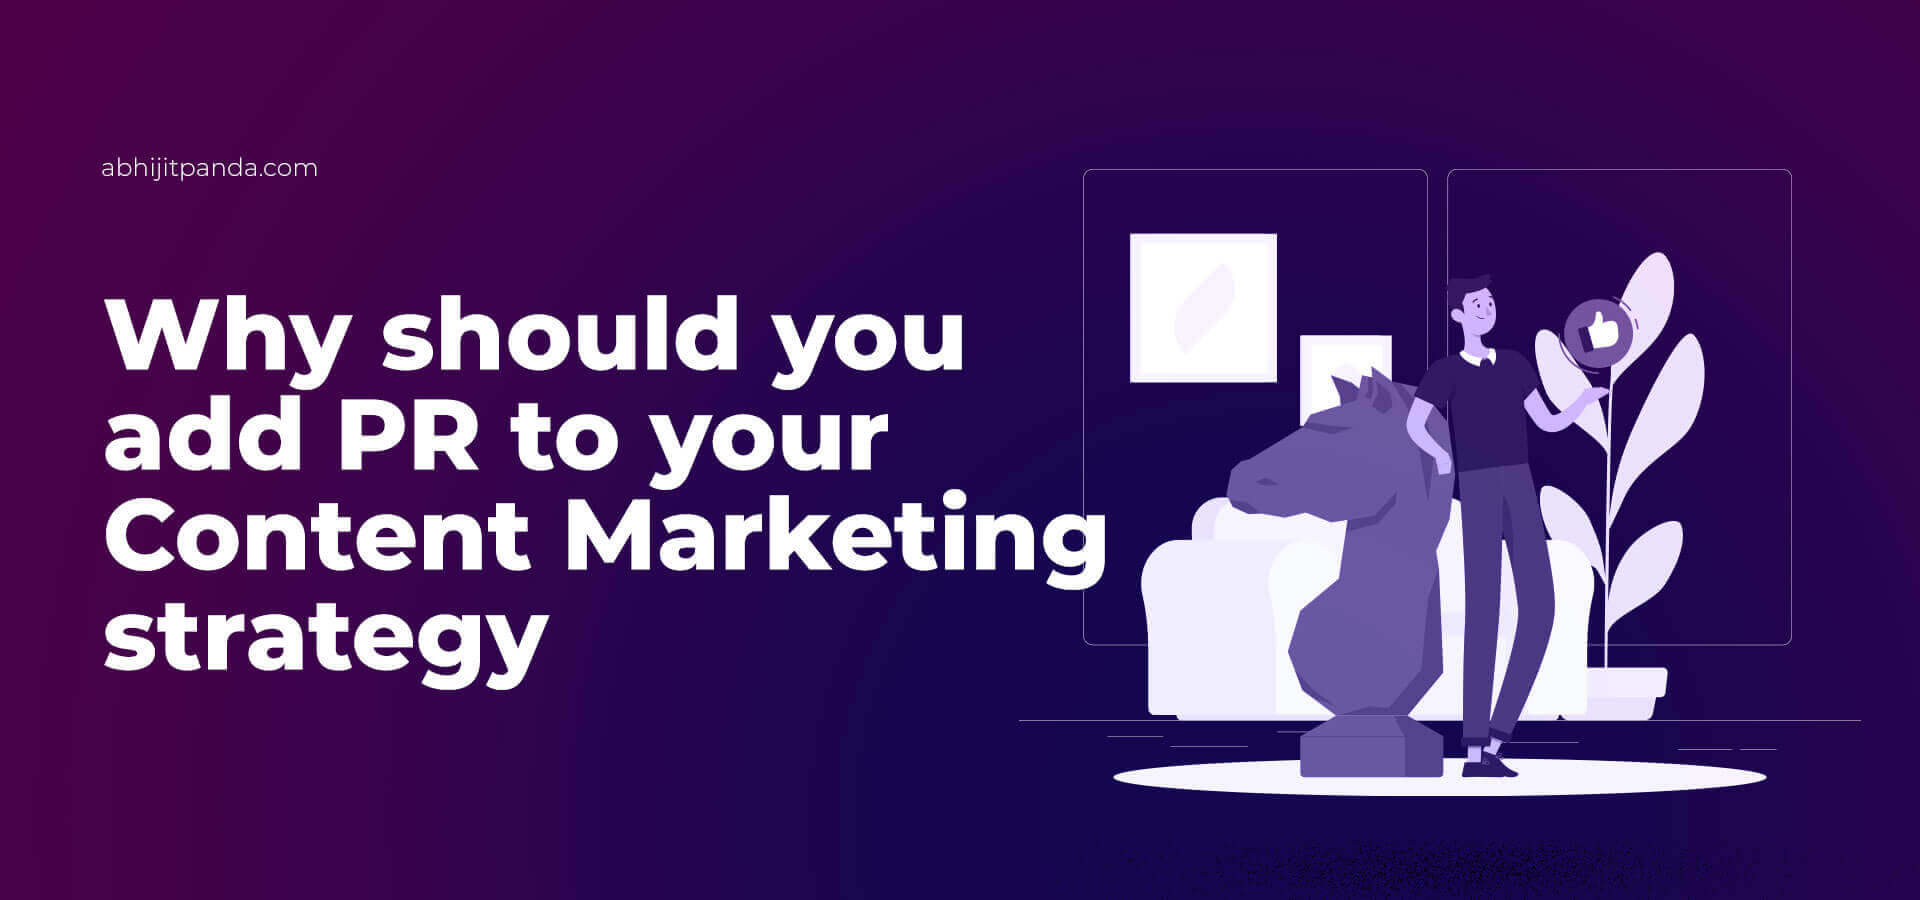 Add PR to Your Content Marketing Strategy